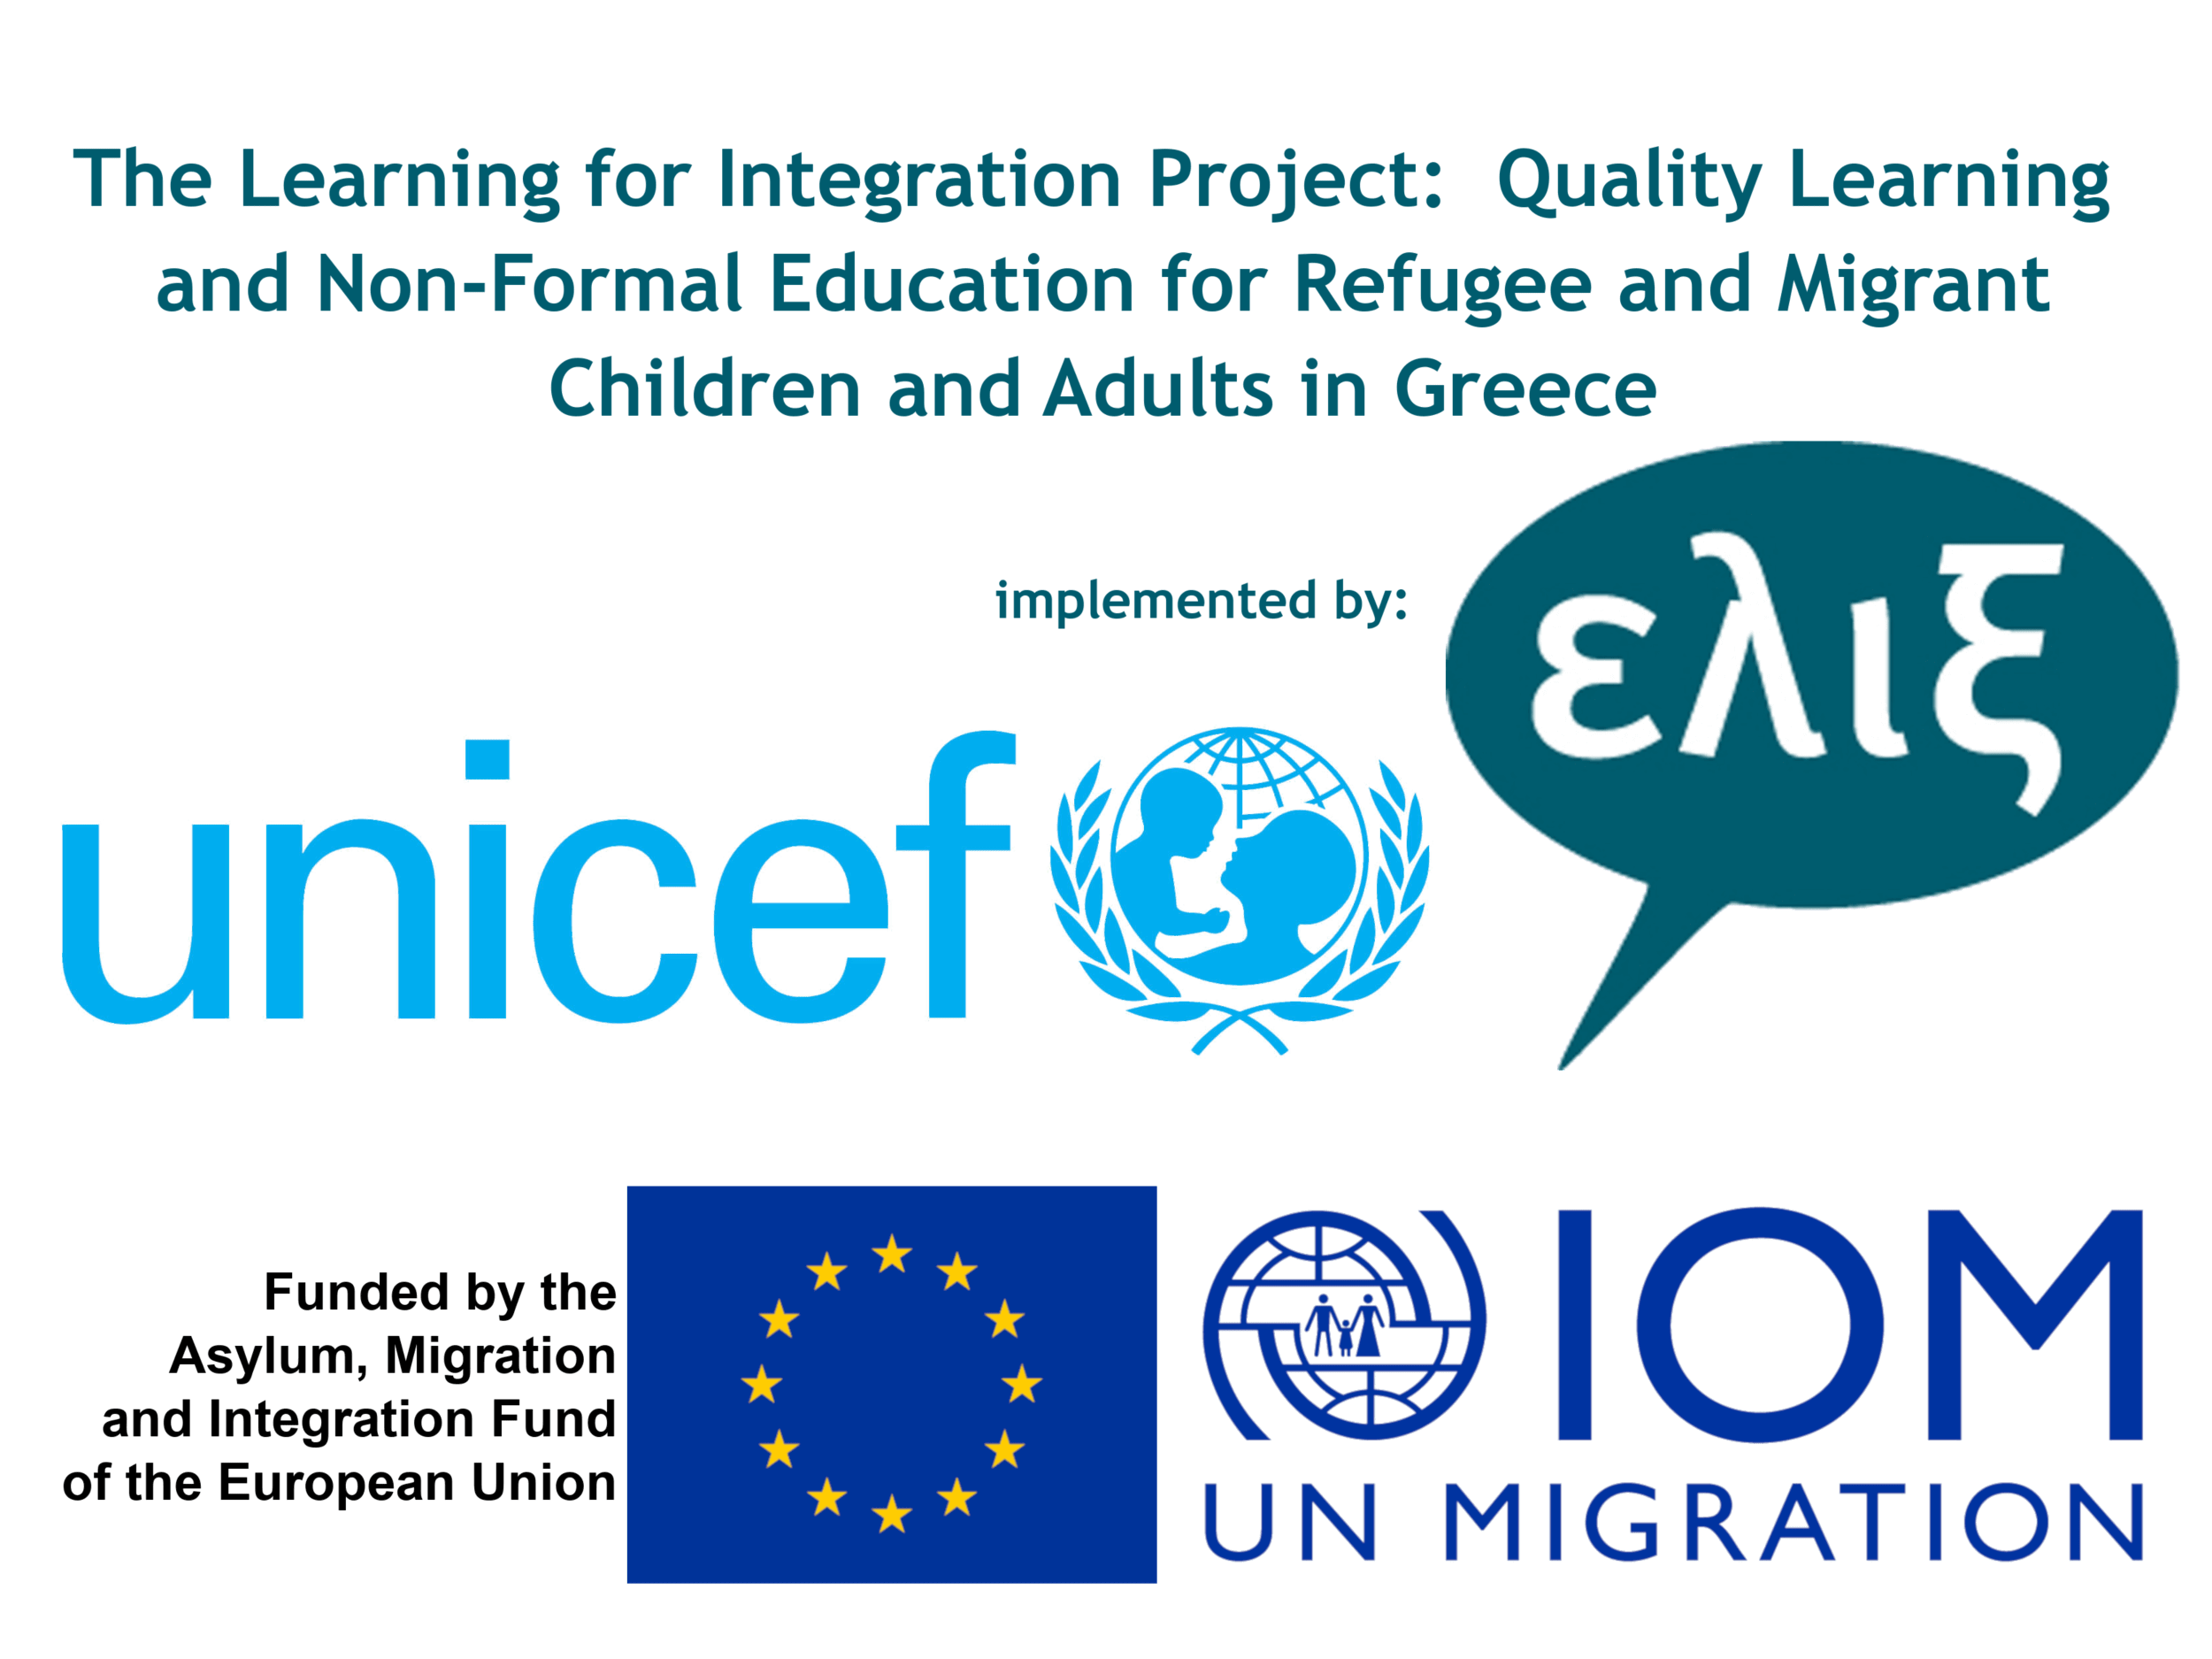 The Learning for Integration Project: Quality Learning and Non-Formal Education for Refugee and Migrant Children and Adults in Greece